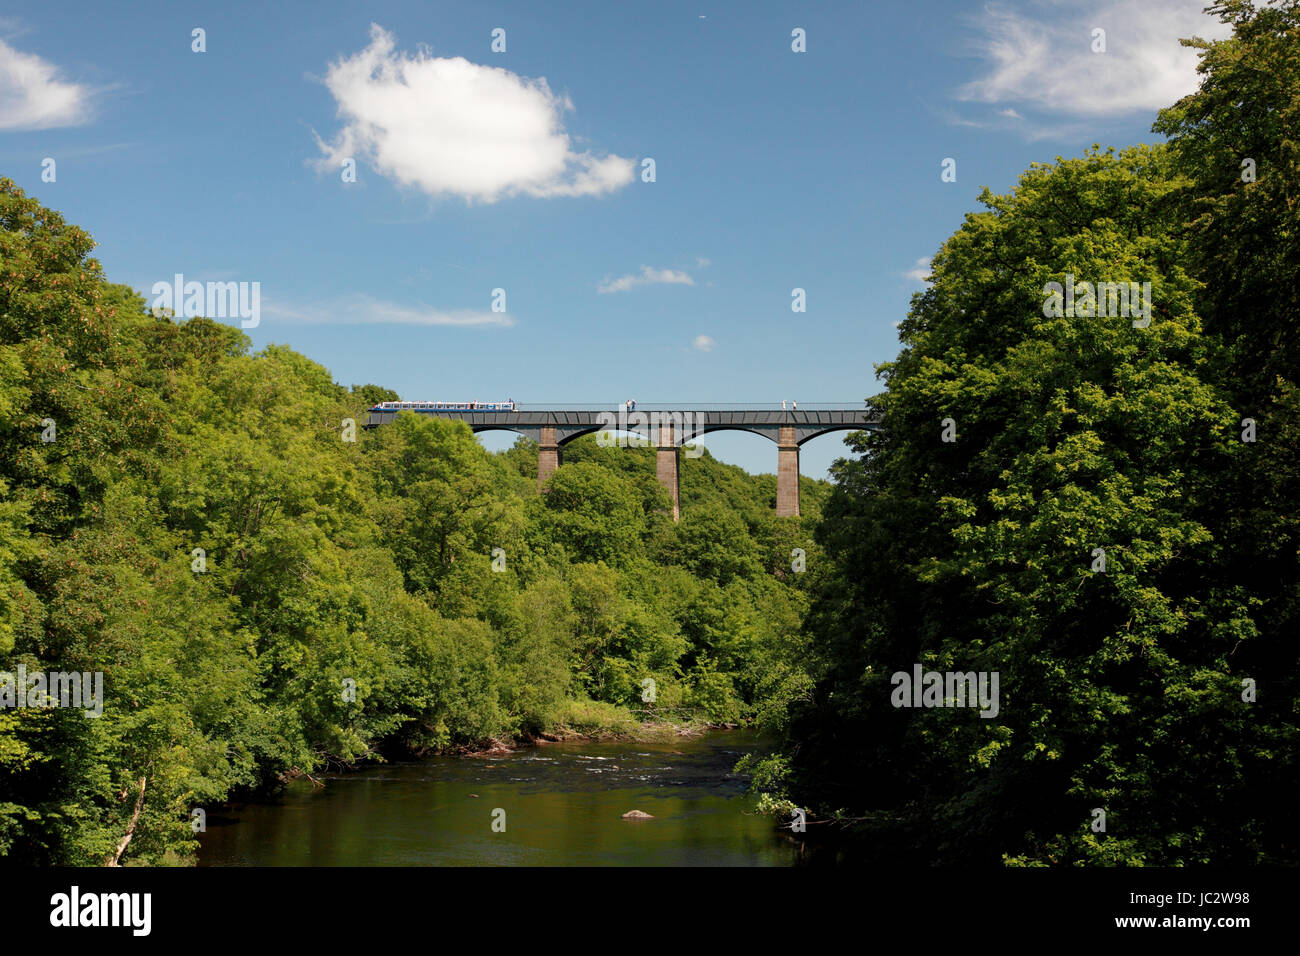 Pontcysyllte Aqueduct which carries the Llangollen Canal over the river Dee in north Wales seen from Froncysyllte Stock Photo